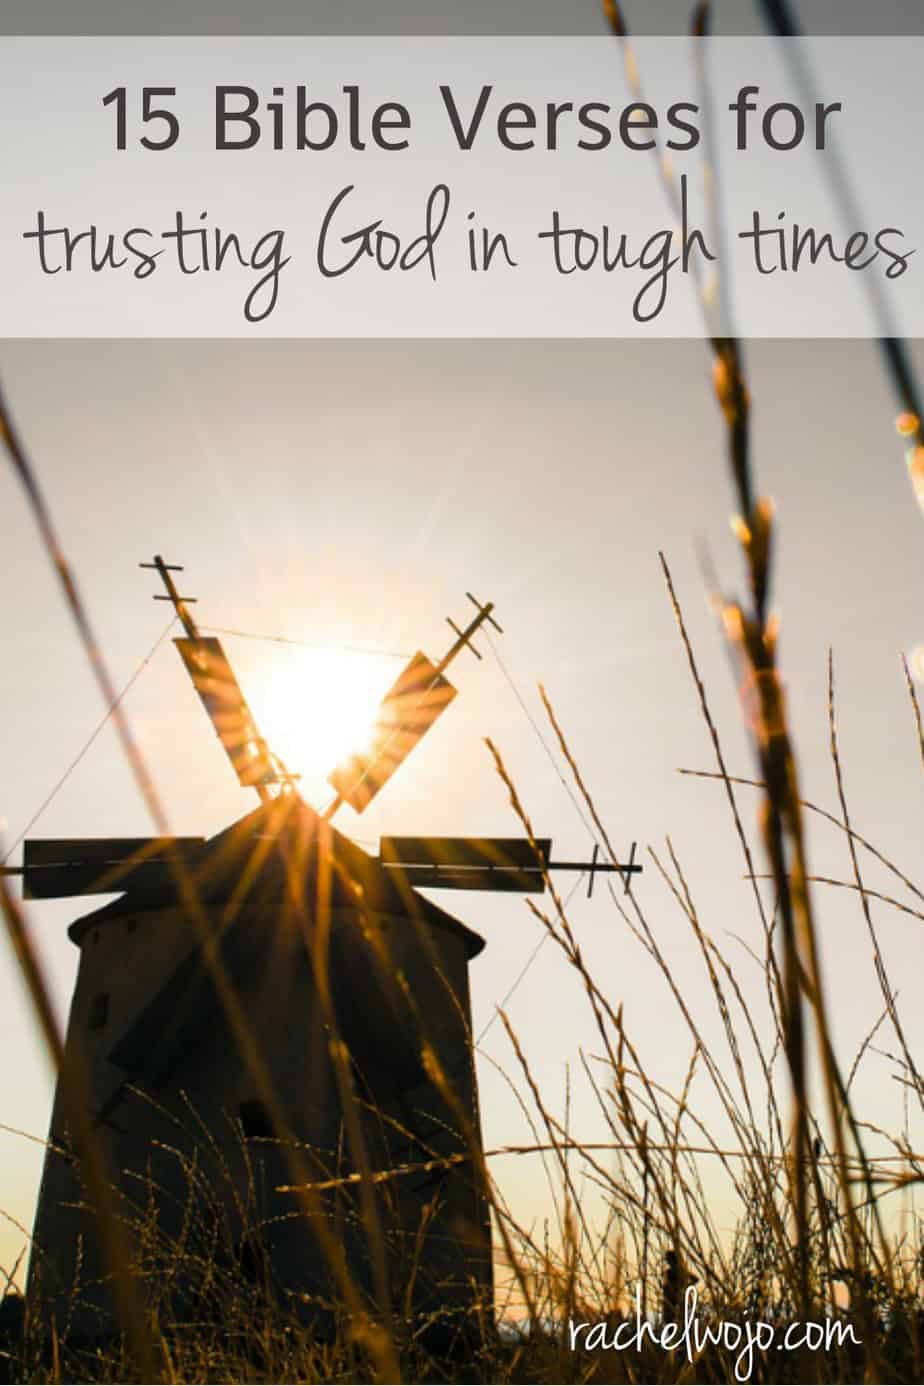 15 Bible Verses For Trusting God In Tough Times Rachelwojocom